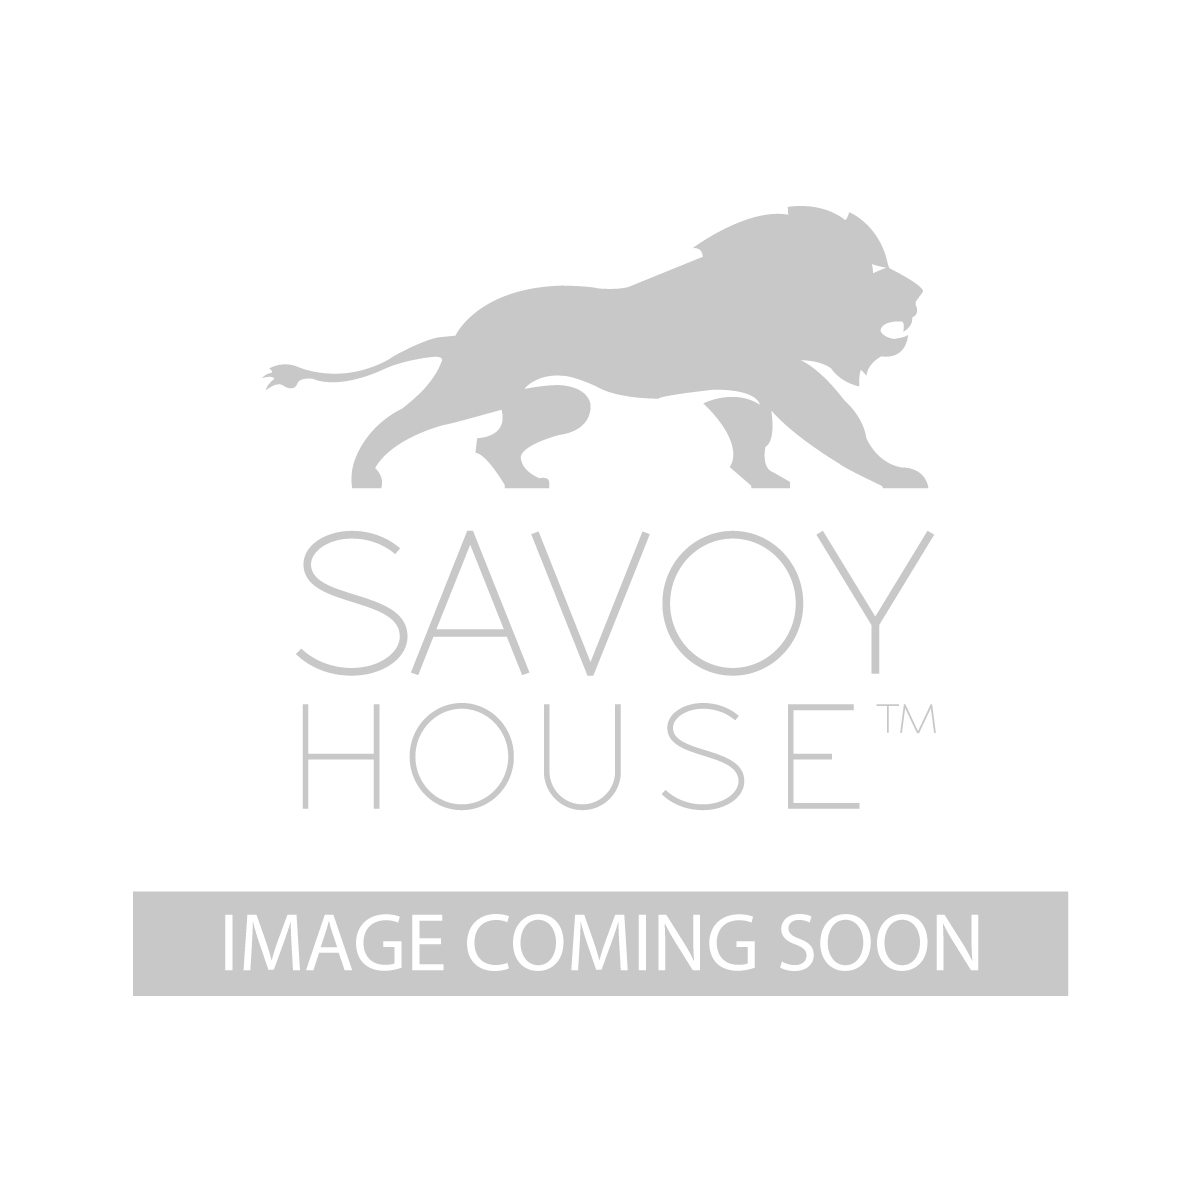 1 8902 9 41 kelsey 9 light chandelier by savoy house for Savoy house com